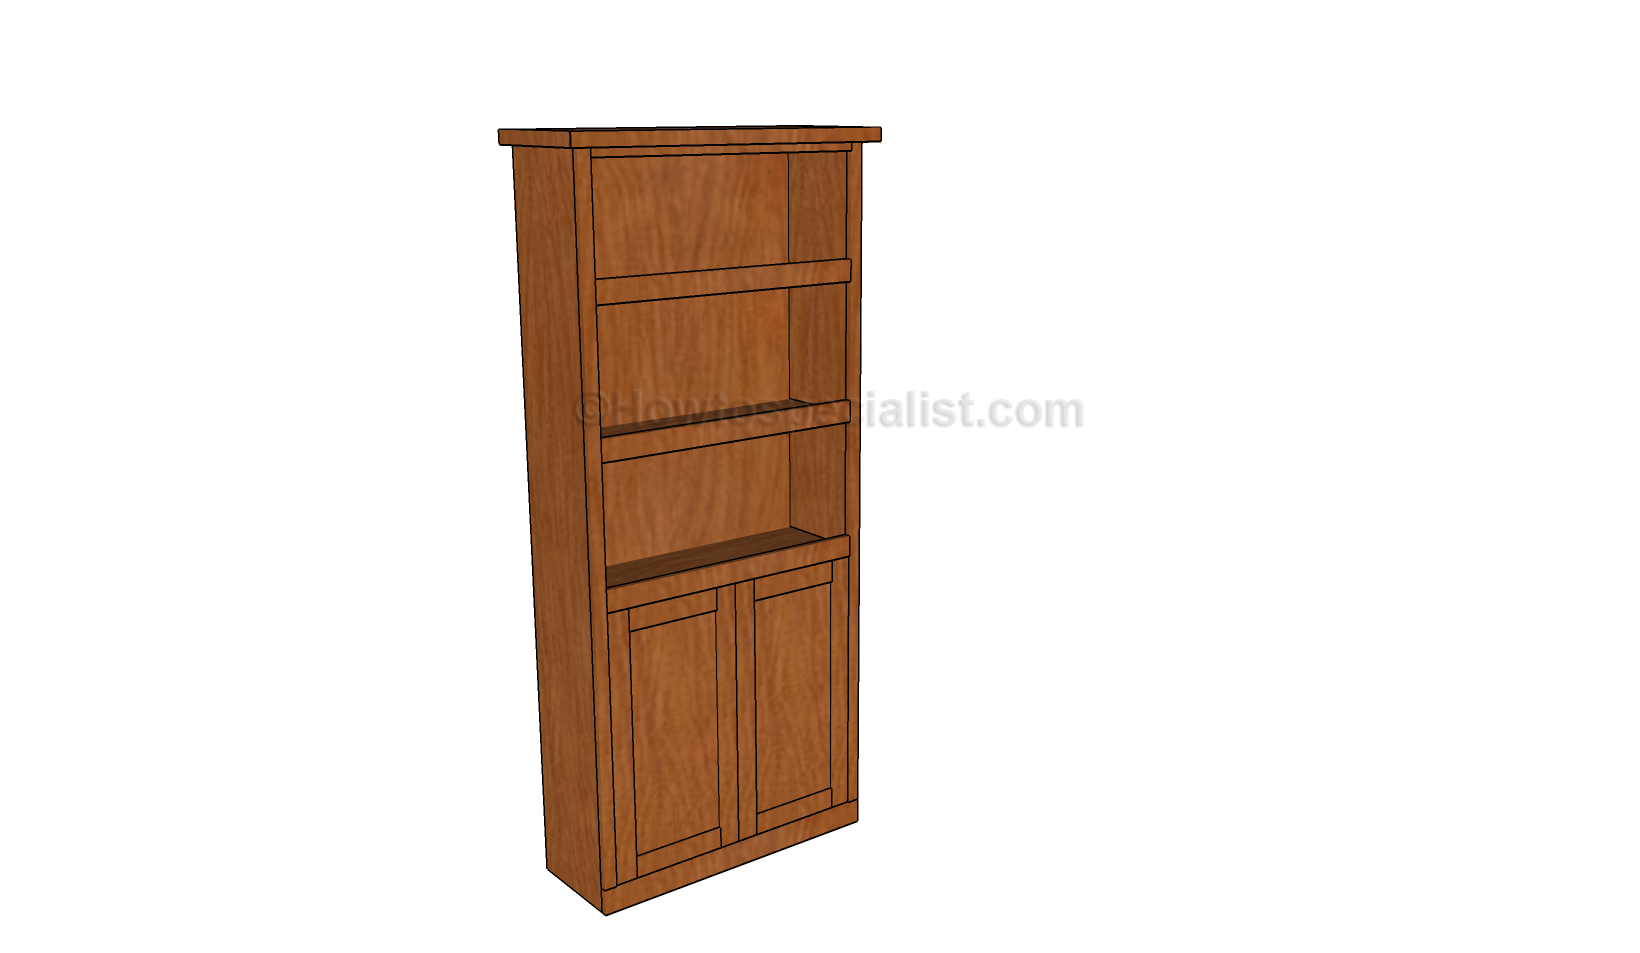 cabinet plans howtospecialist how to build step by step diy plans